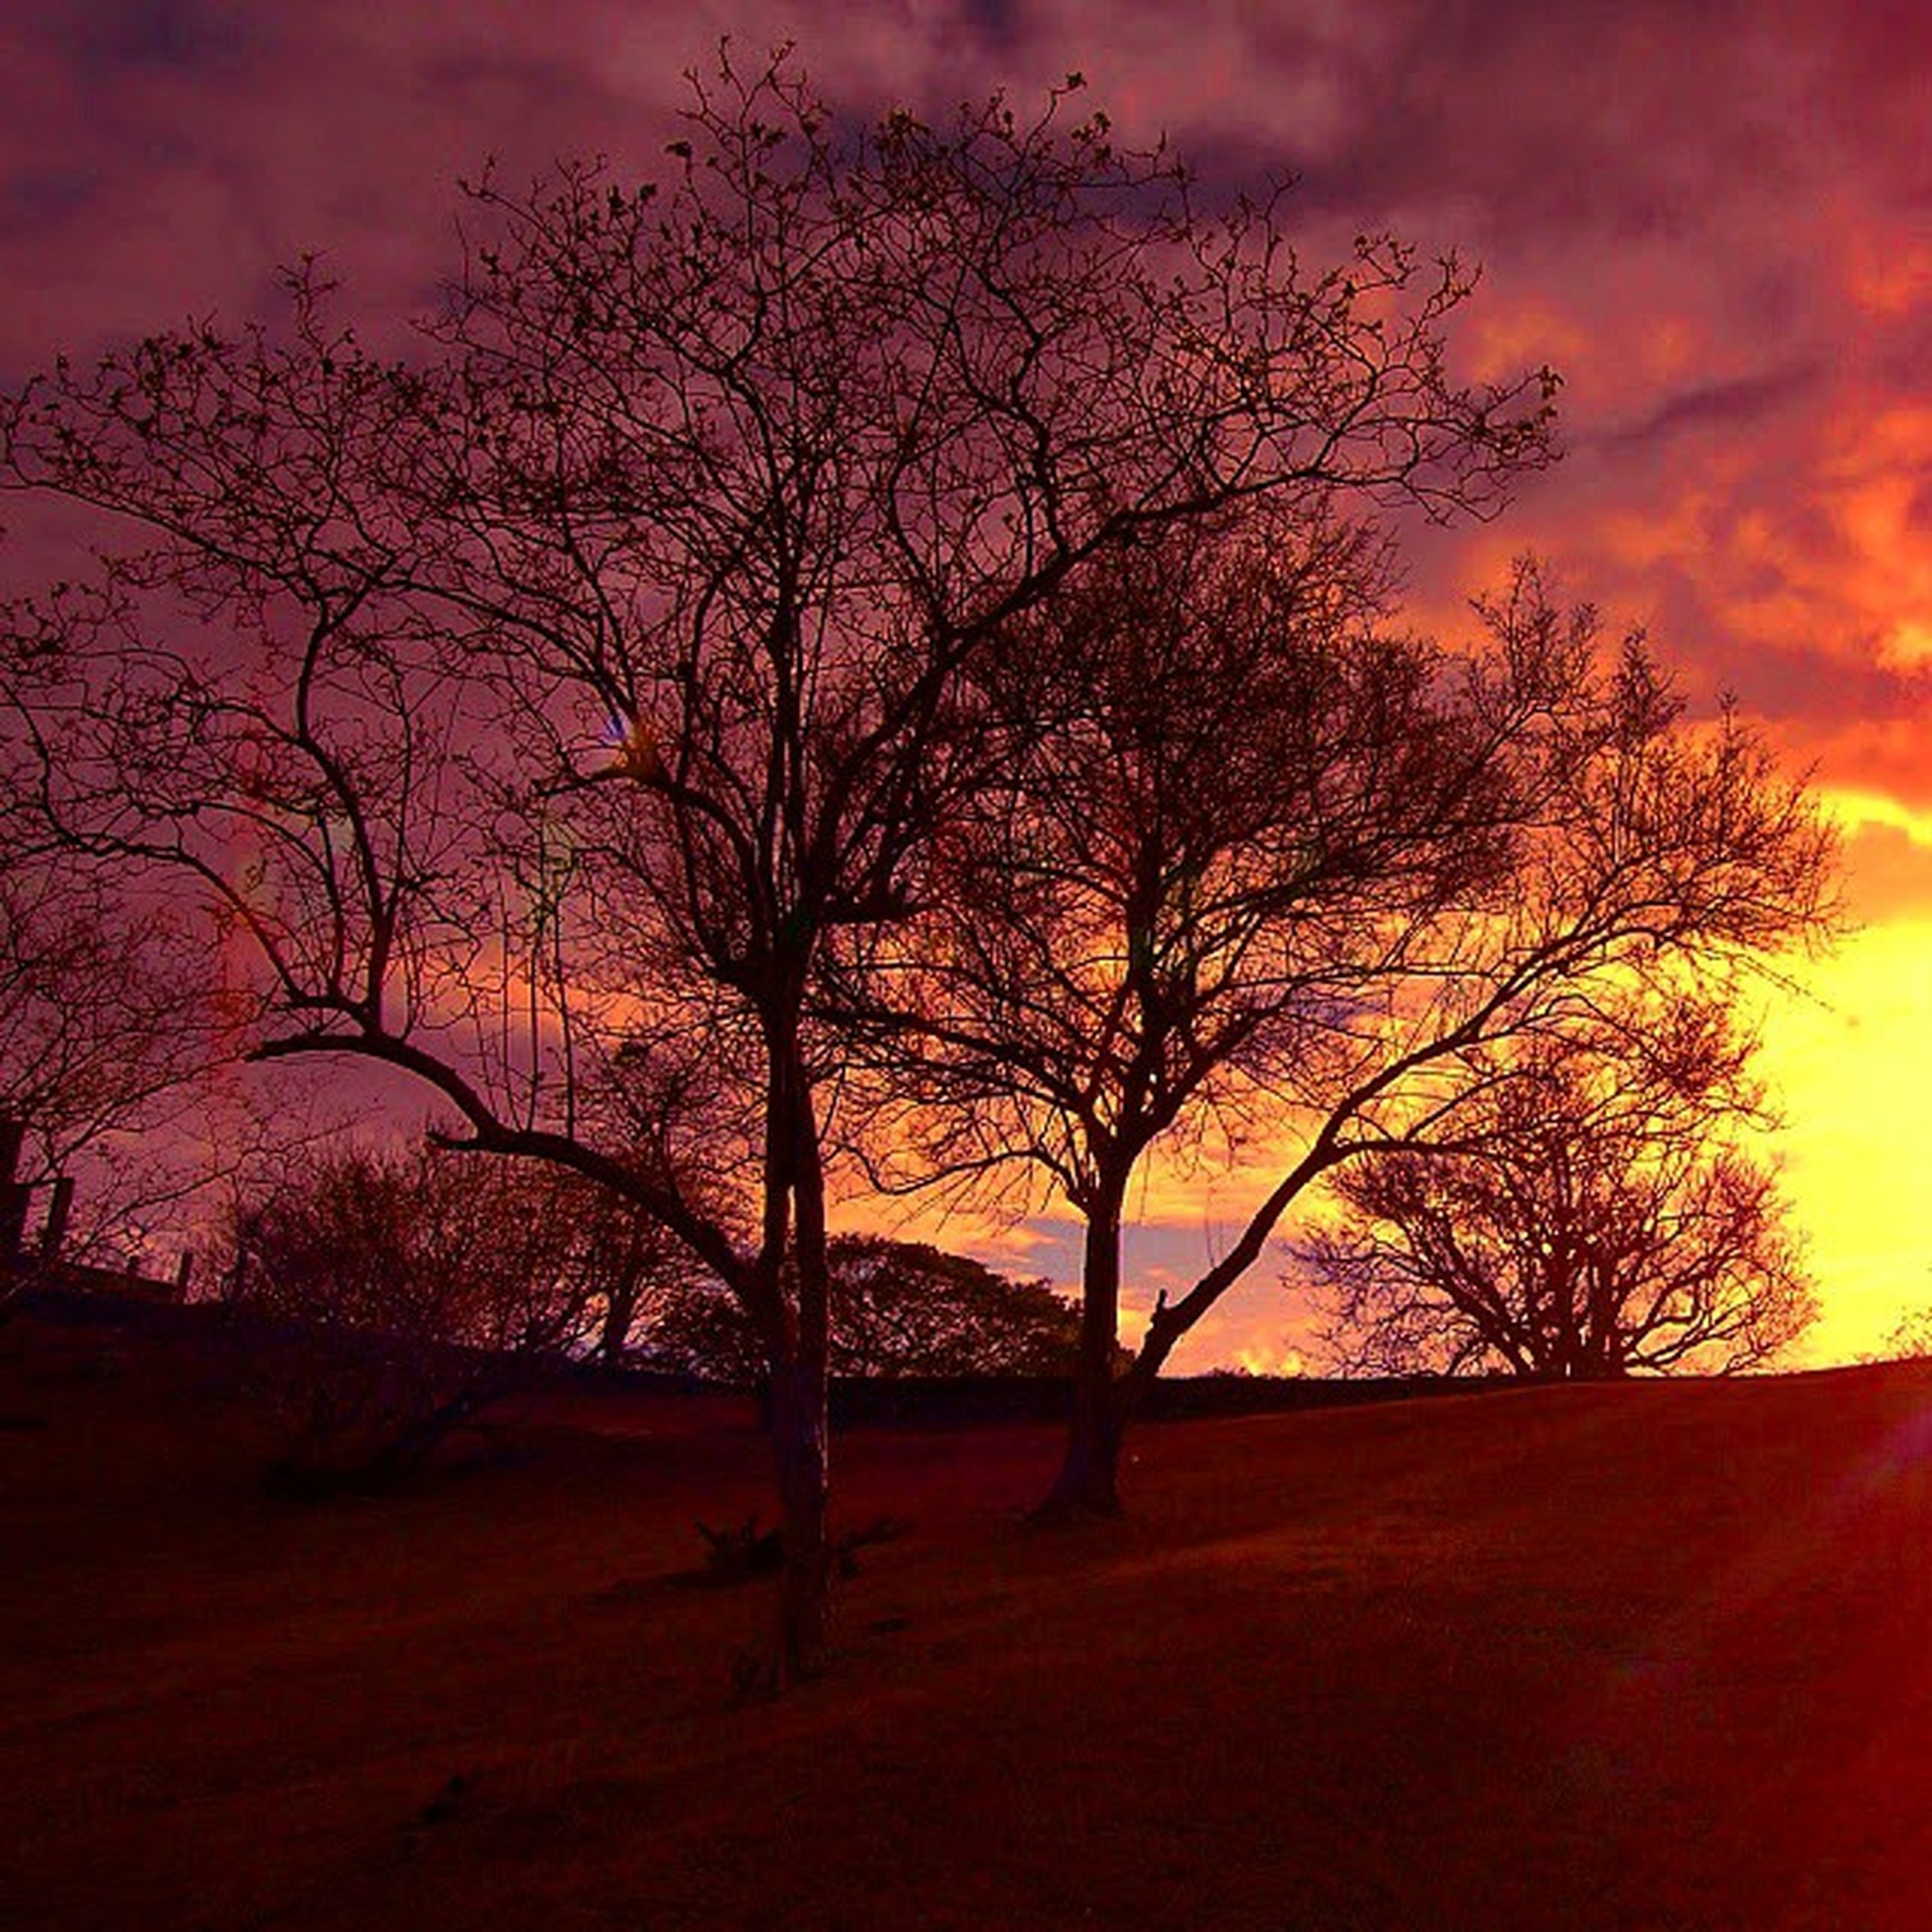 sunset, tree, sky, silhouette, bare tree, orange color, tranquility, cloud - sky, beauty in nature, scenics, tranquil scene, branch, nature, dramatic sky, idyllic, cloud, cloudy, landscape, growth, outdoors